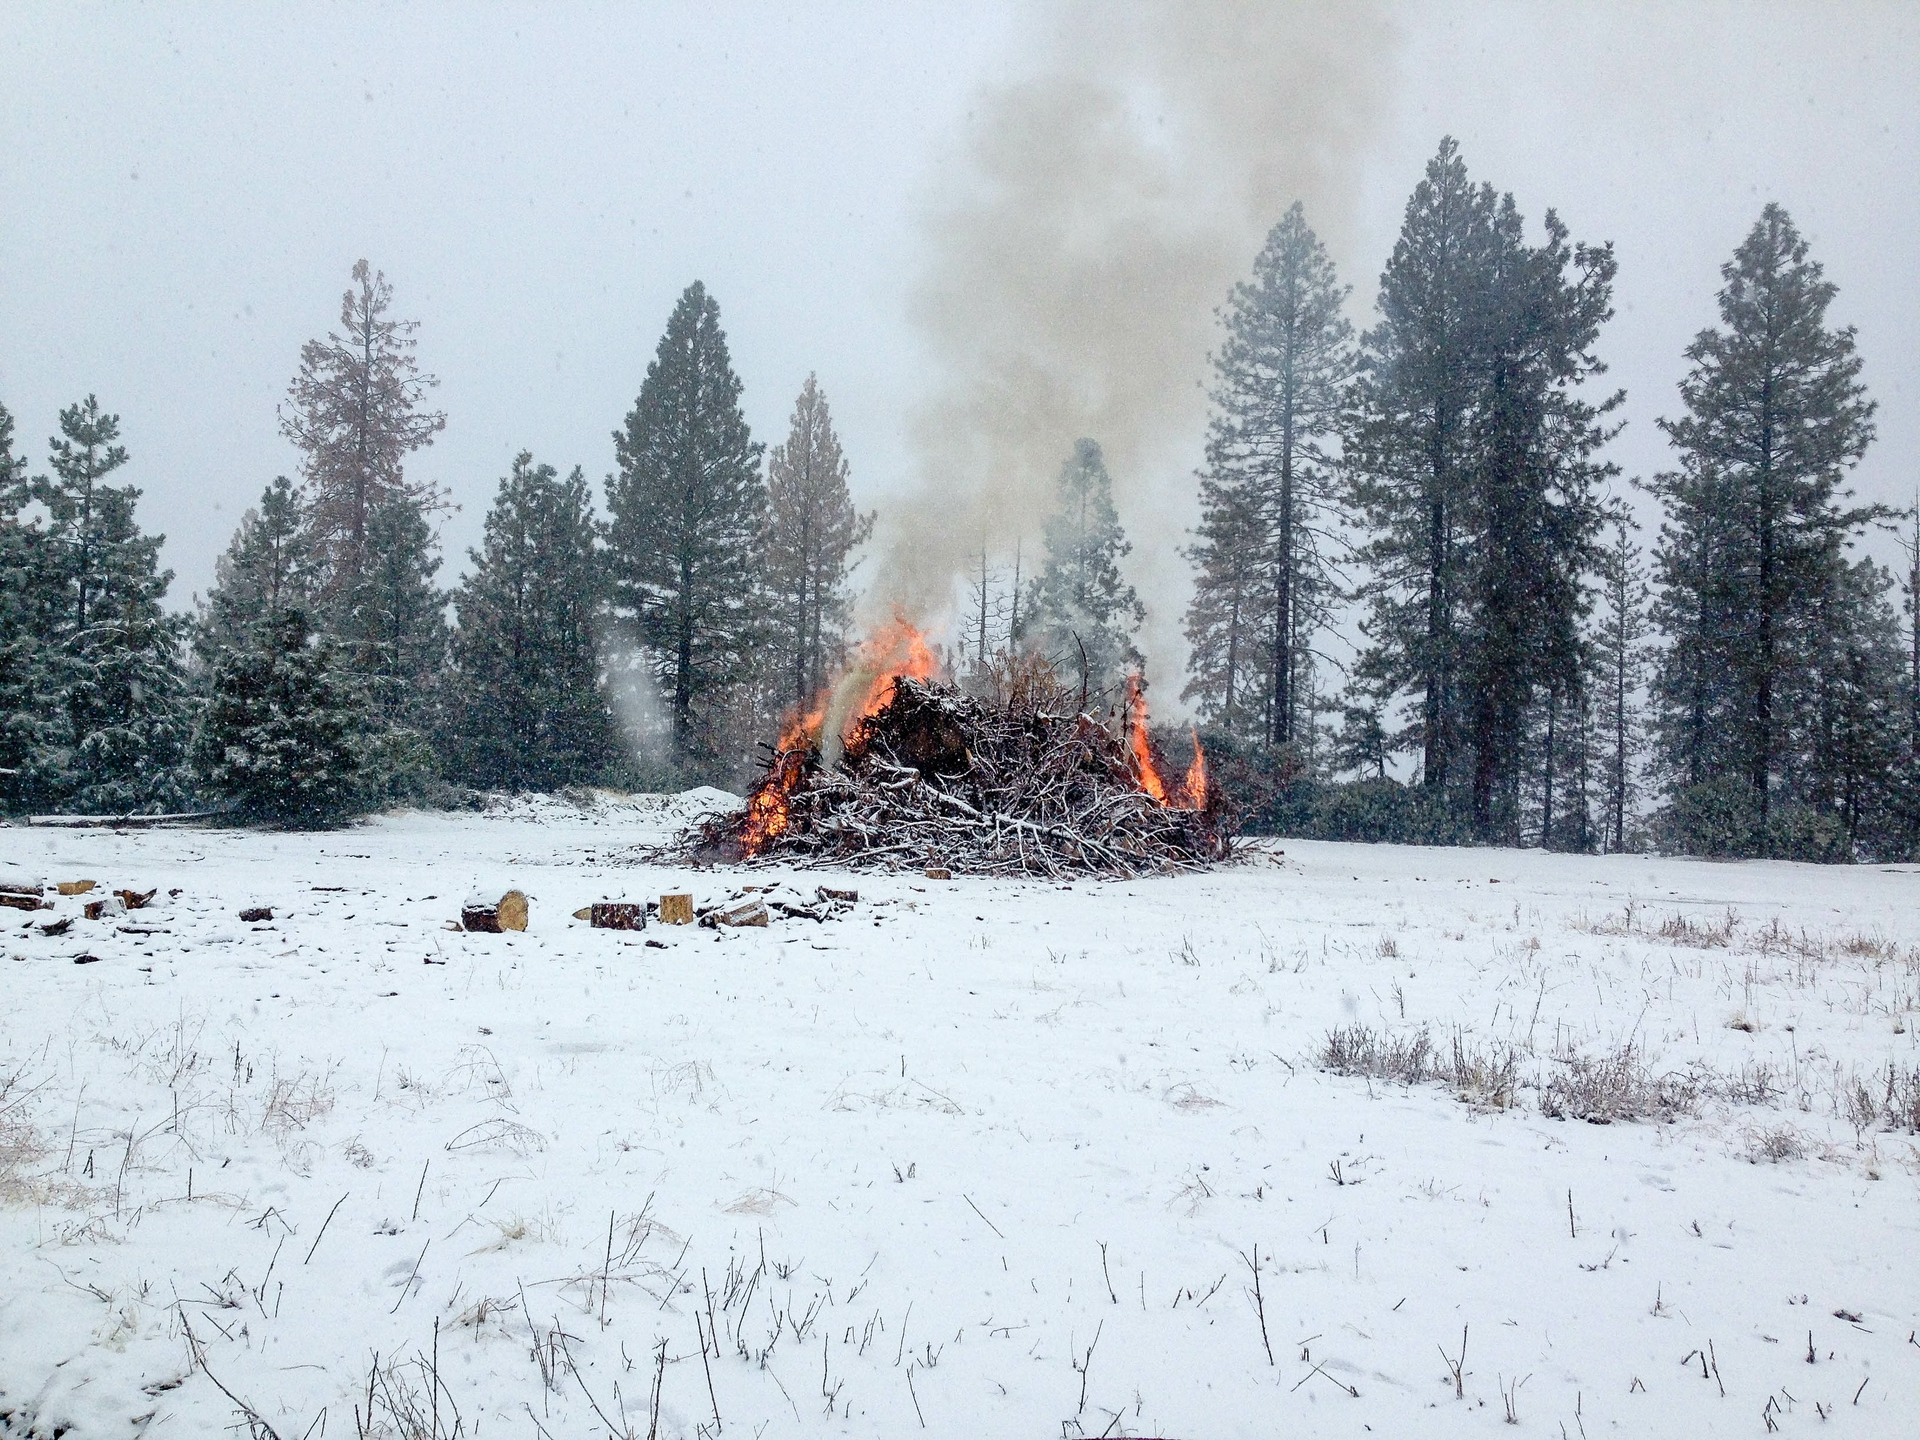 Piles of logs and debris are burned by SCE Forestry during the winter when conditions are safe.